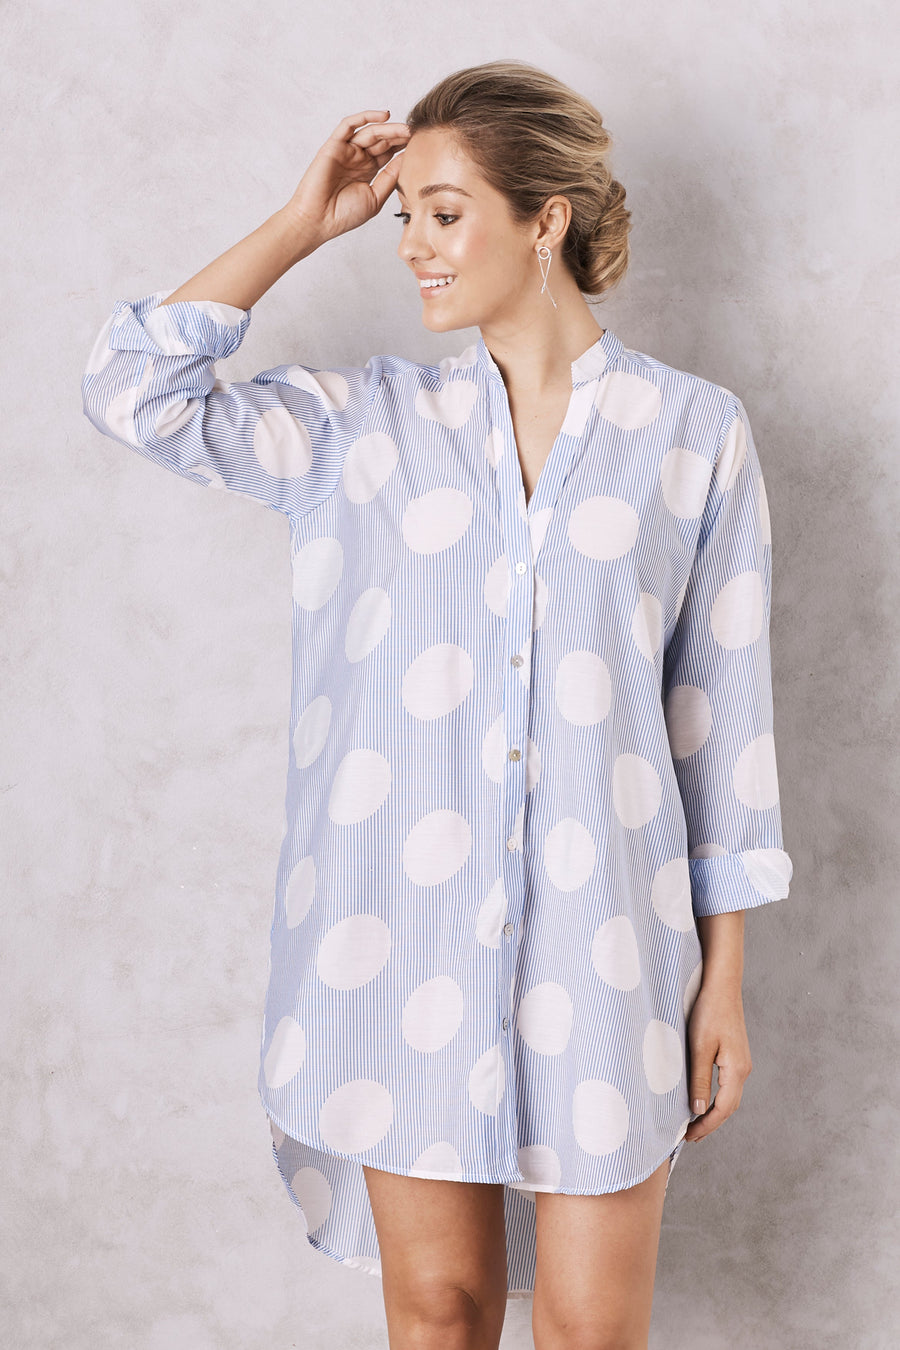 Pamela Polka Dot Dress Shirt